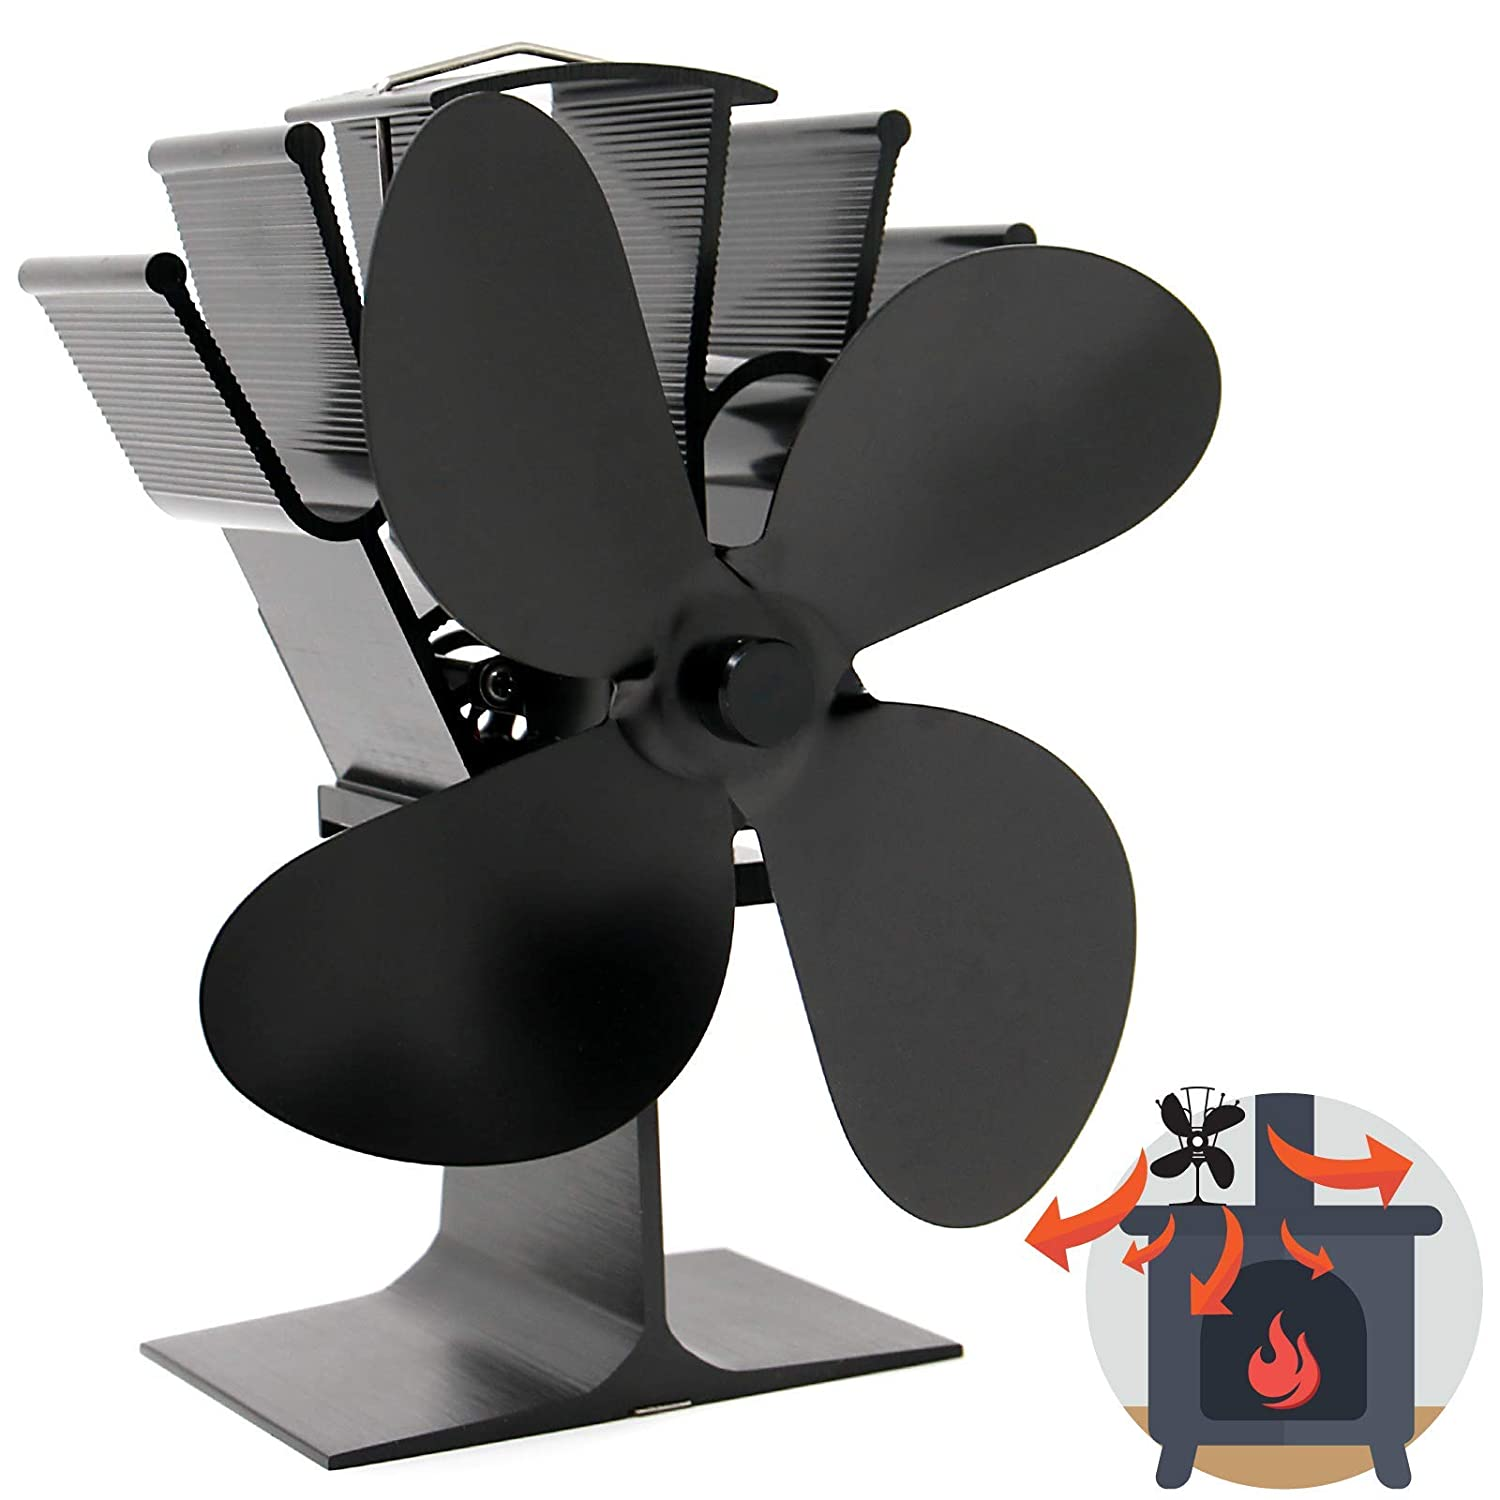 Heat Powered 4 Blade Stove Fan | Silent Operation | Fireplace Wood & Log Burner | Increased Efficiency | Safe & Eco Friendly | M&W